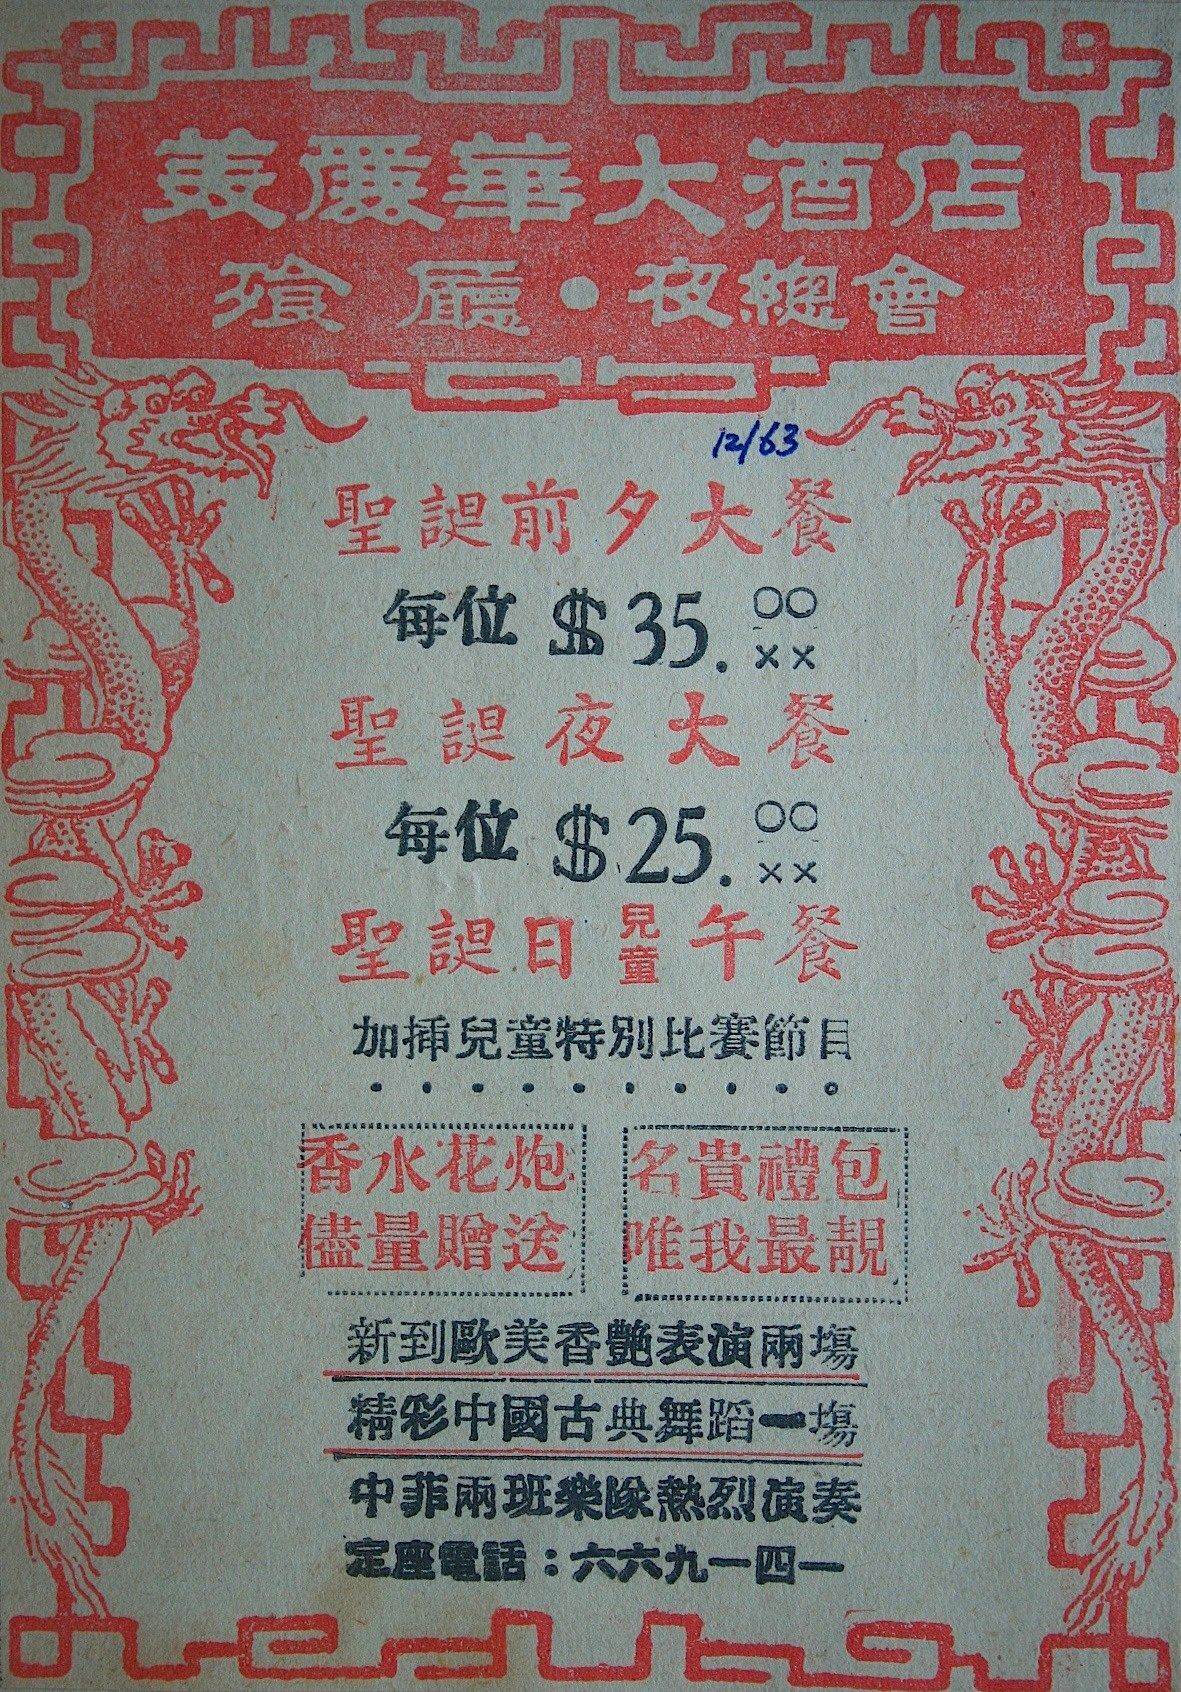 Pin By Prcrichard Link On Hong Kong Traditional Chinese Typography Ancient Chinese Characters Retro Advertising Traditional Ornaments